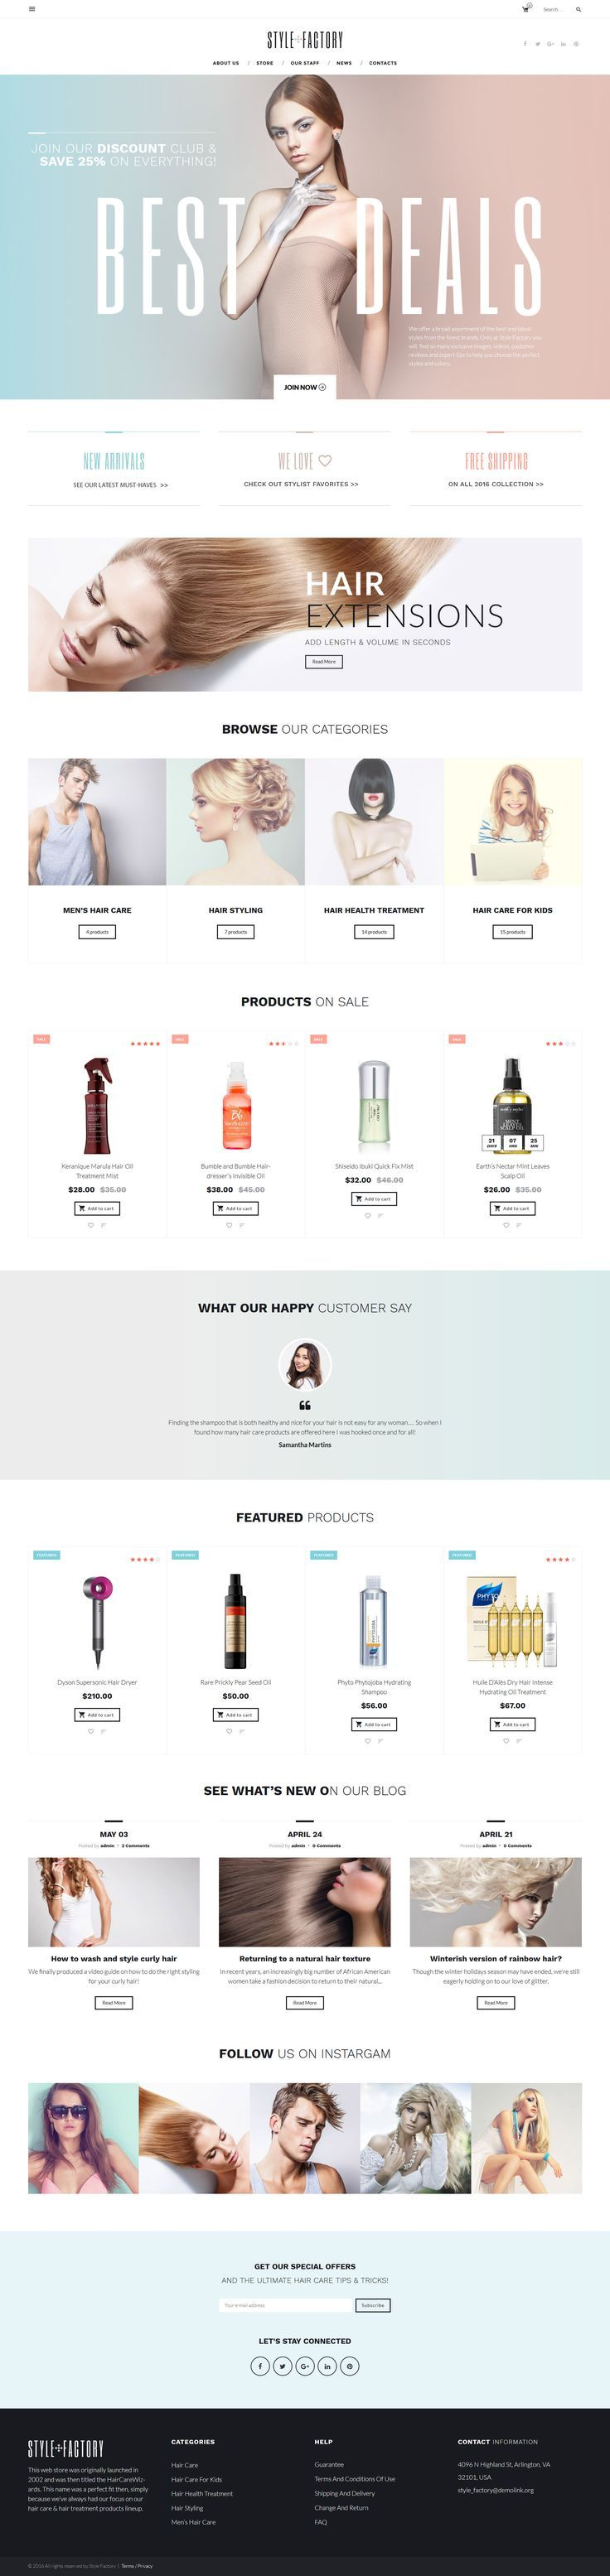 Style Factory - Hair Care & Hair Styling WooCommerce Theme - https://www.templatemonster.com/woocommerce-themes/61305.html. If you like UX, design, or design thinking, check out theuxblog.com